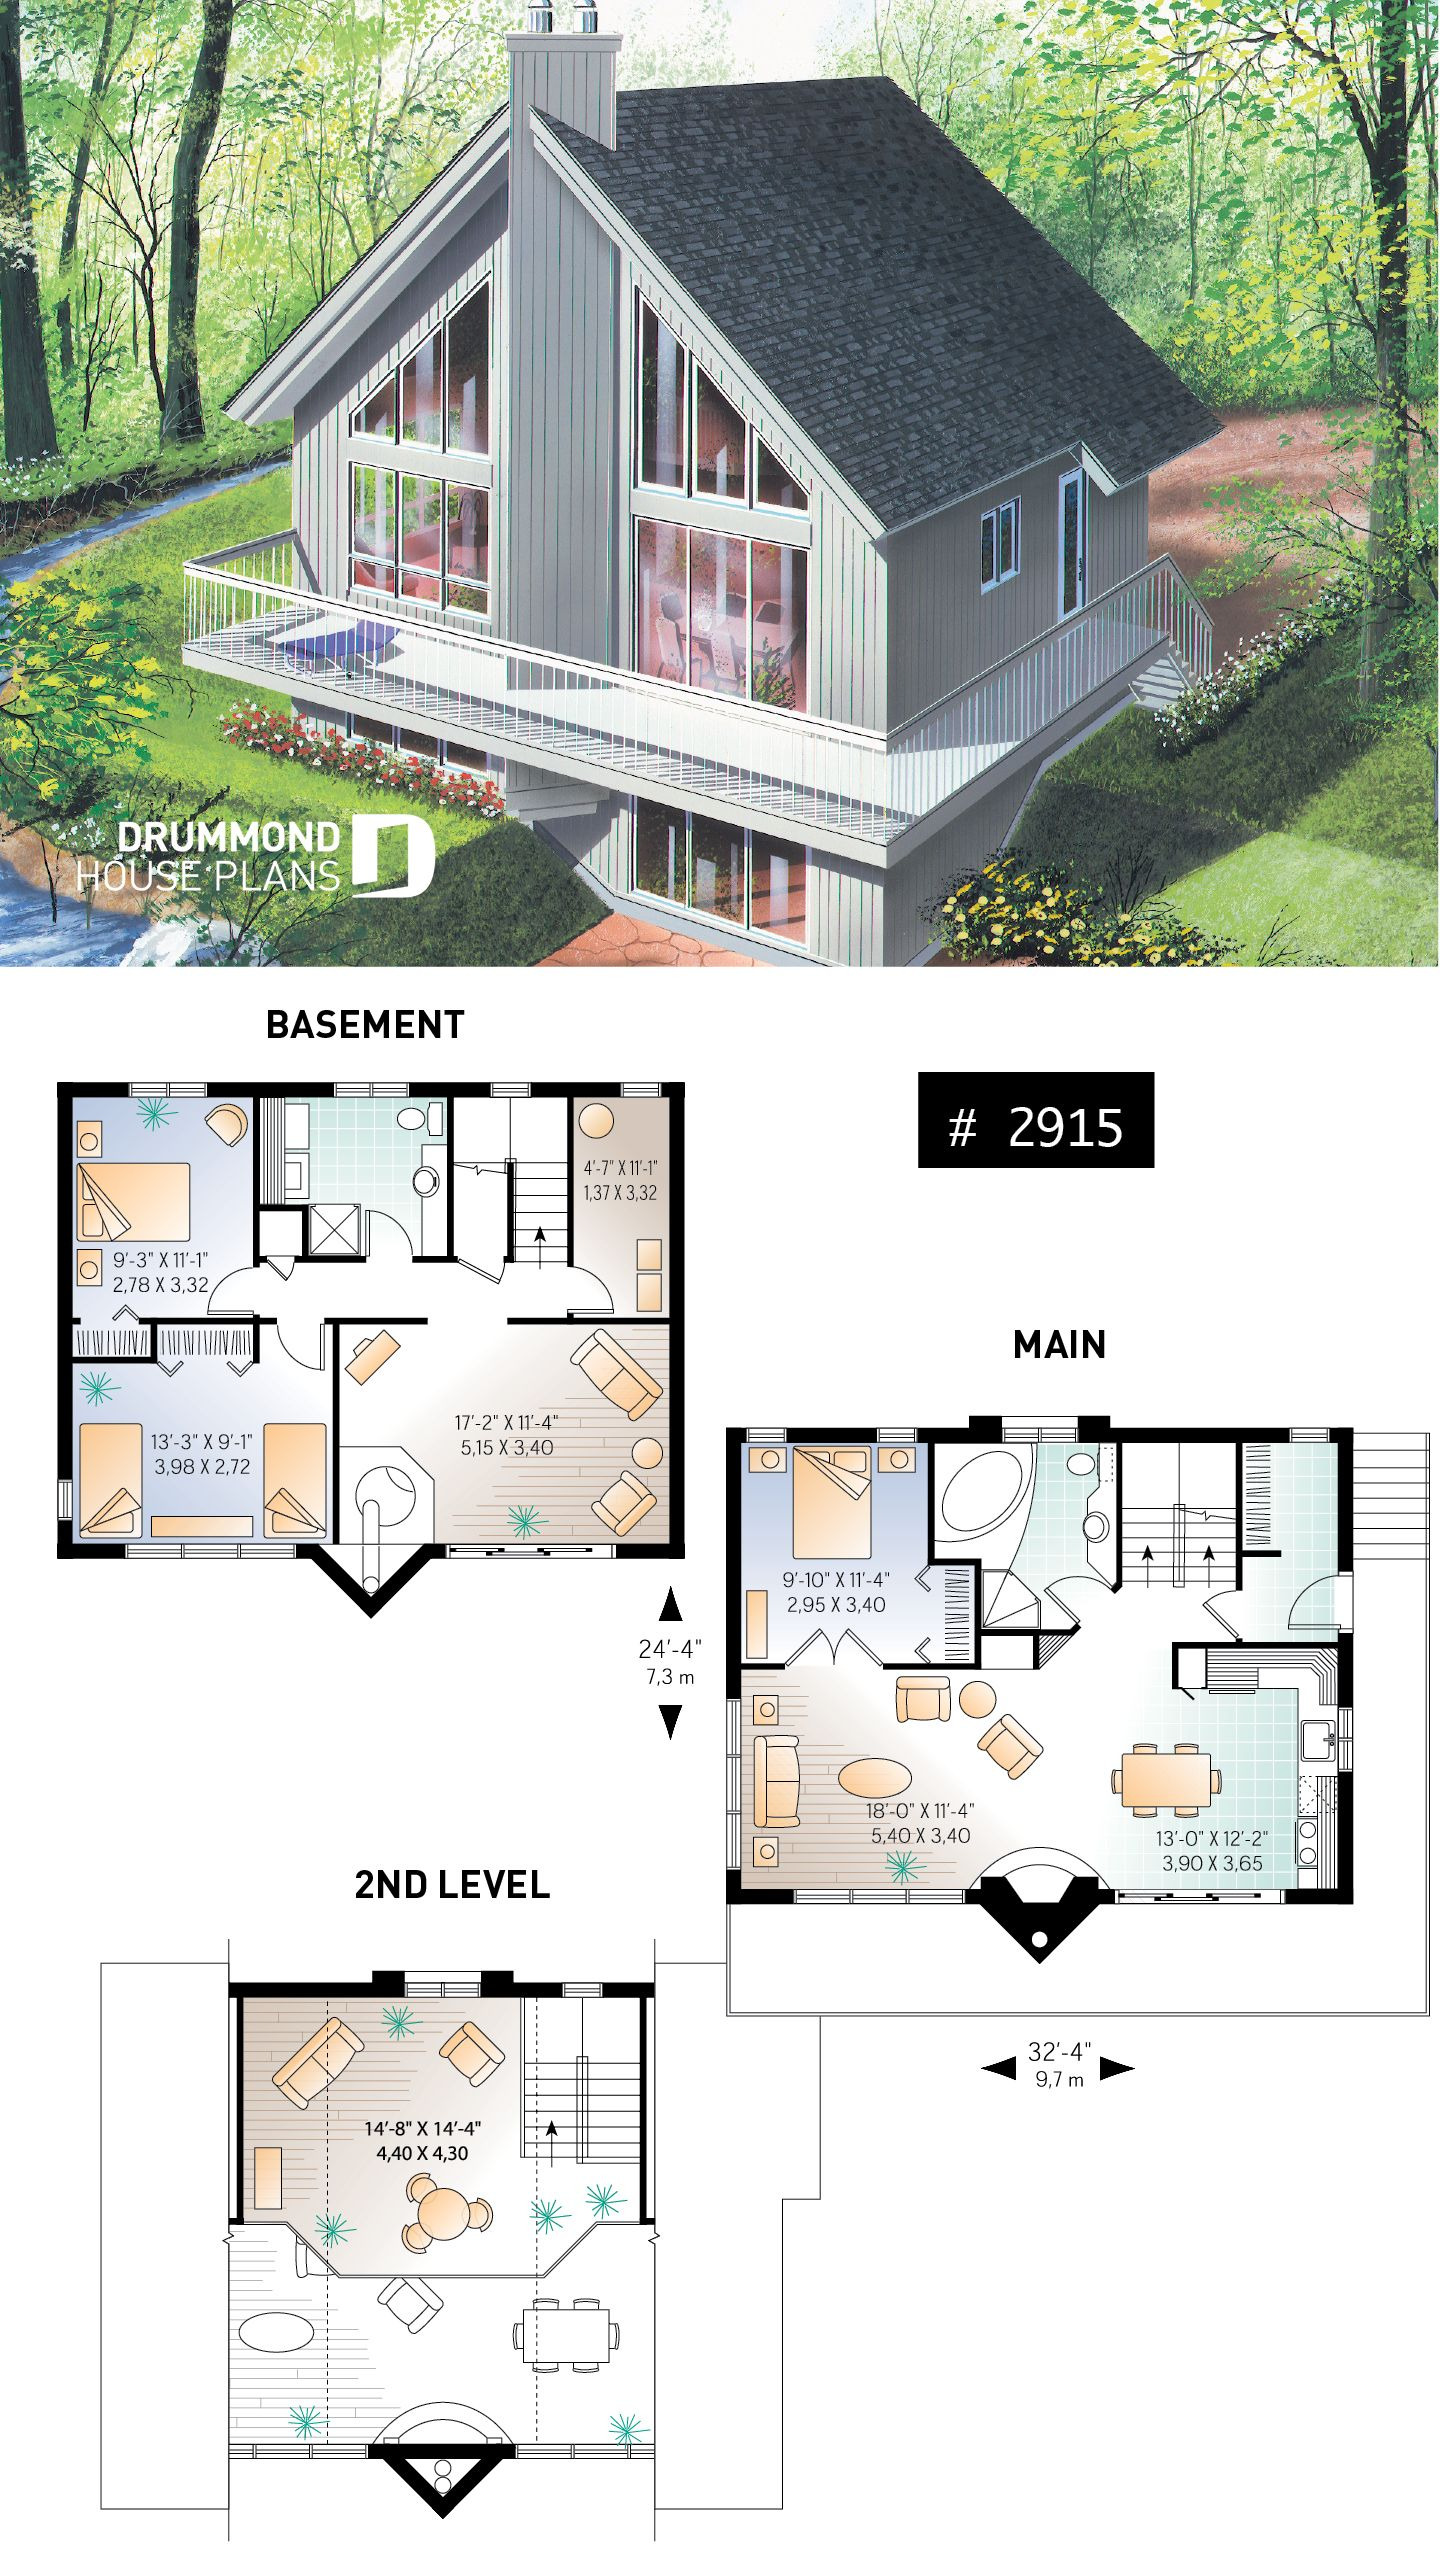 House Plans with Lofts Beautiful House Plan Skybridge 3 No 2915